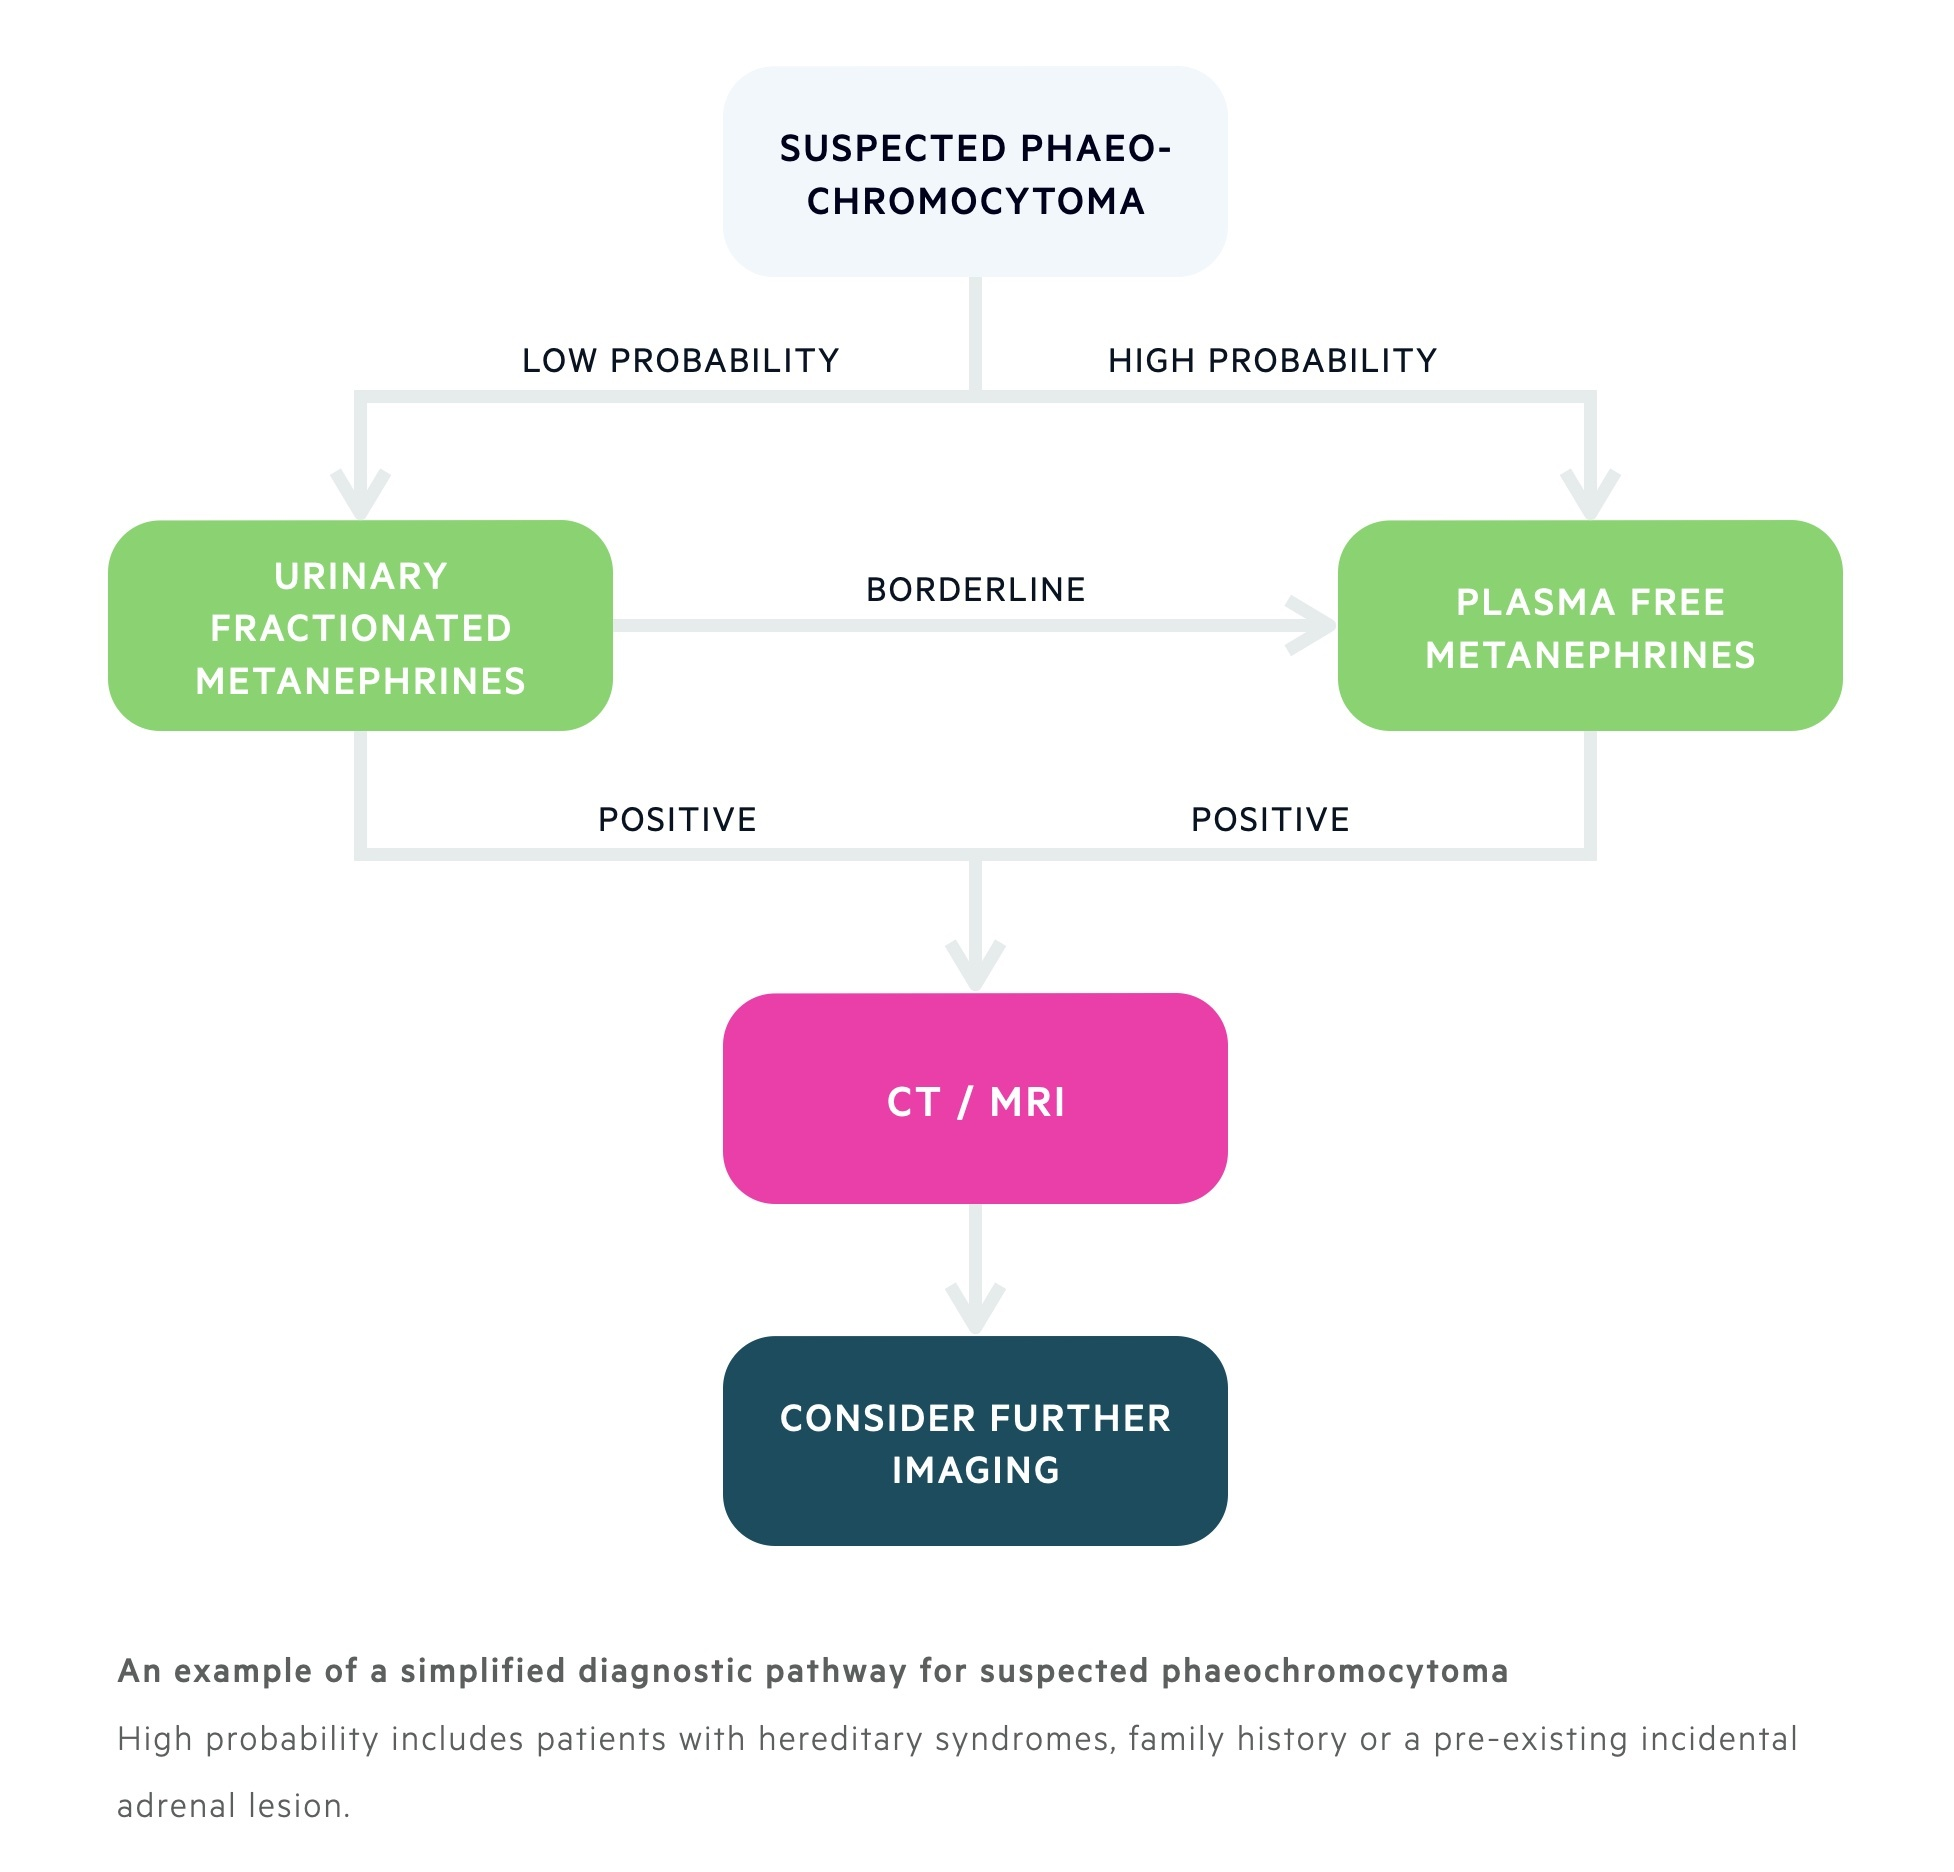 An example of a simplified diagnostic pathway for suspected phaeochromocytoma